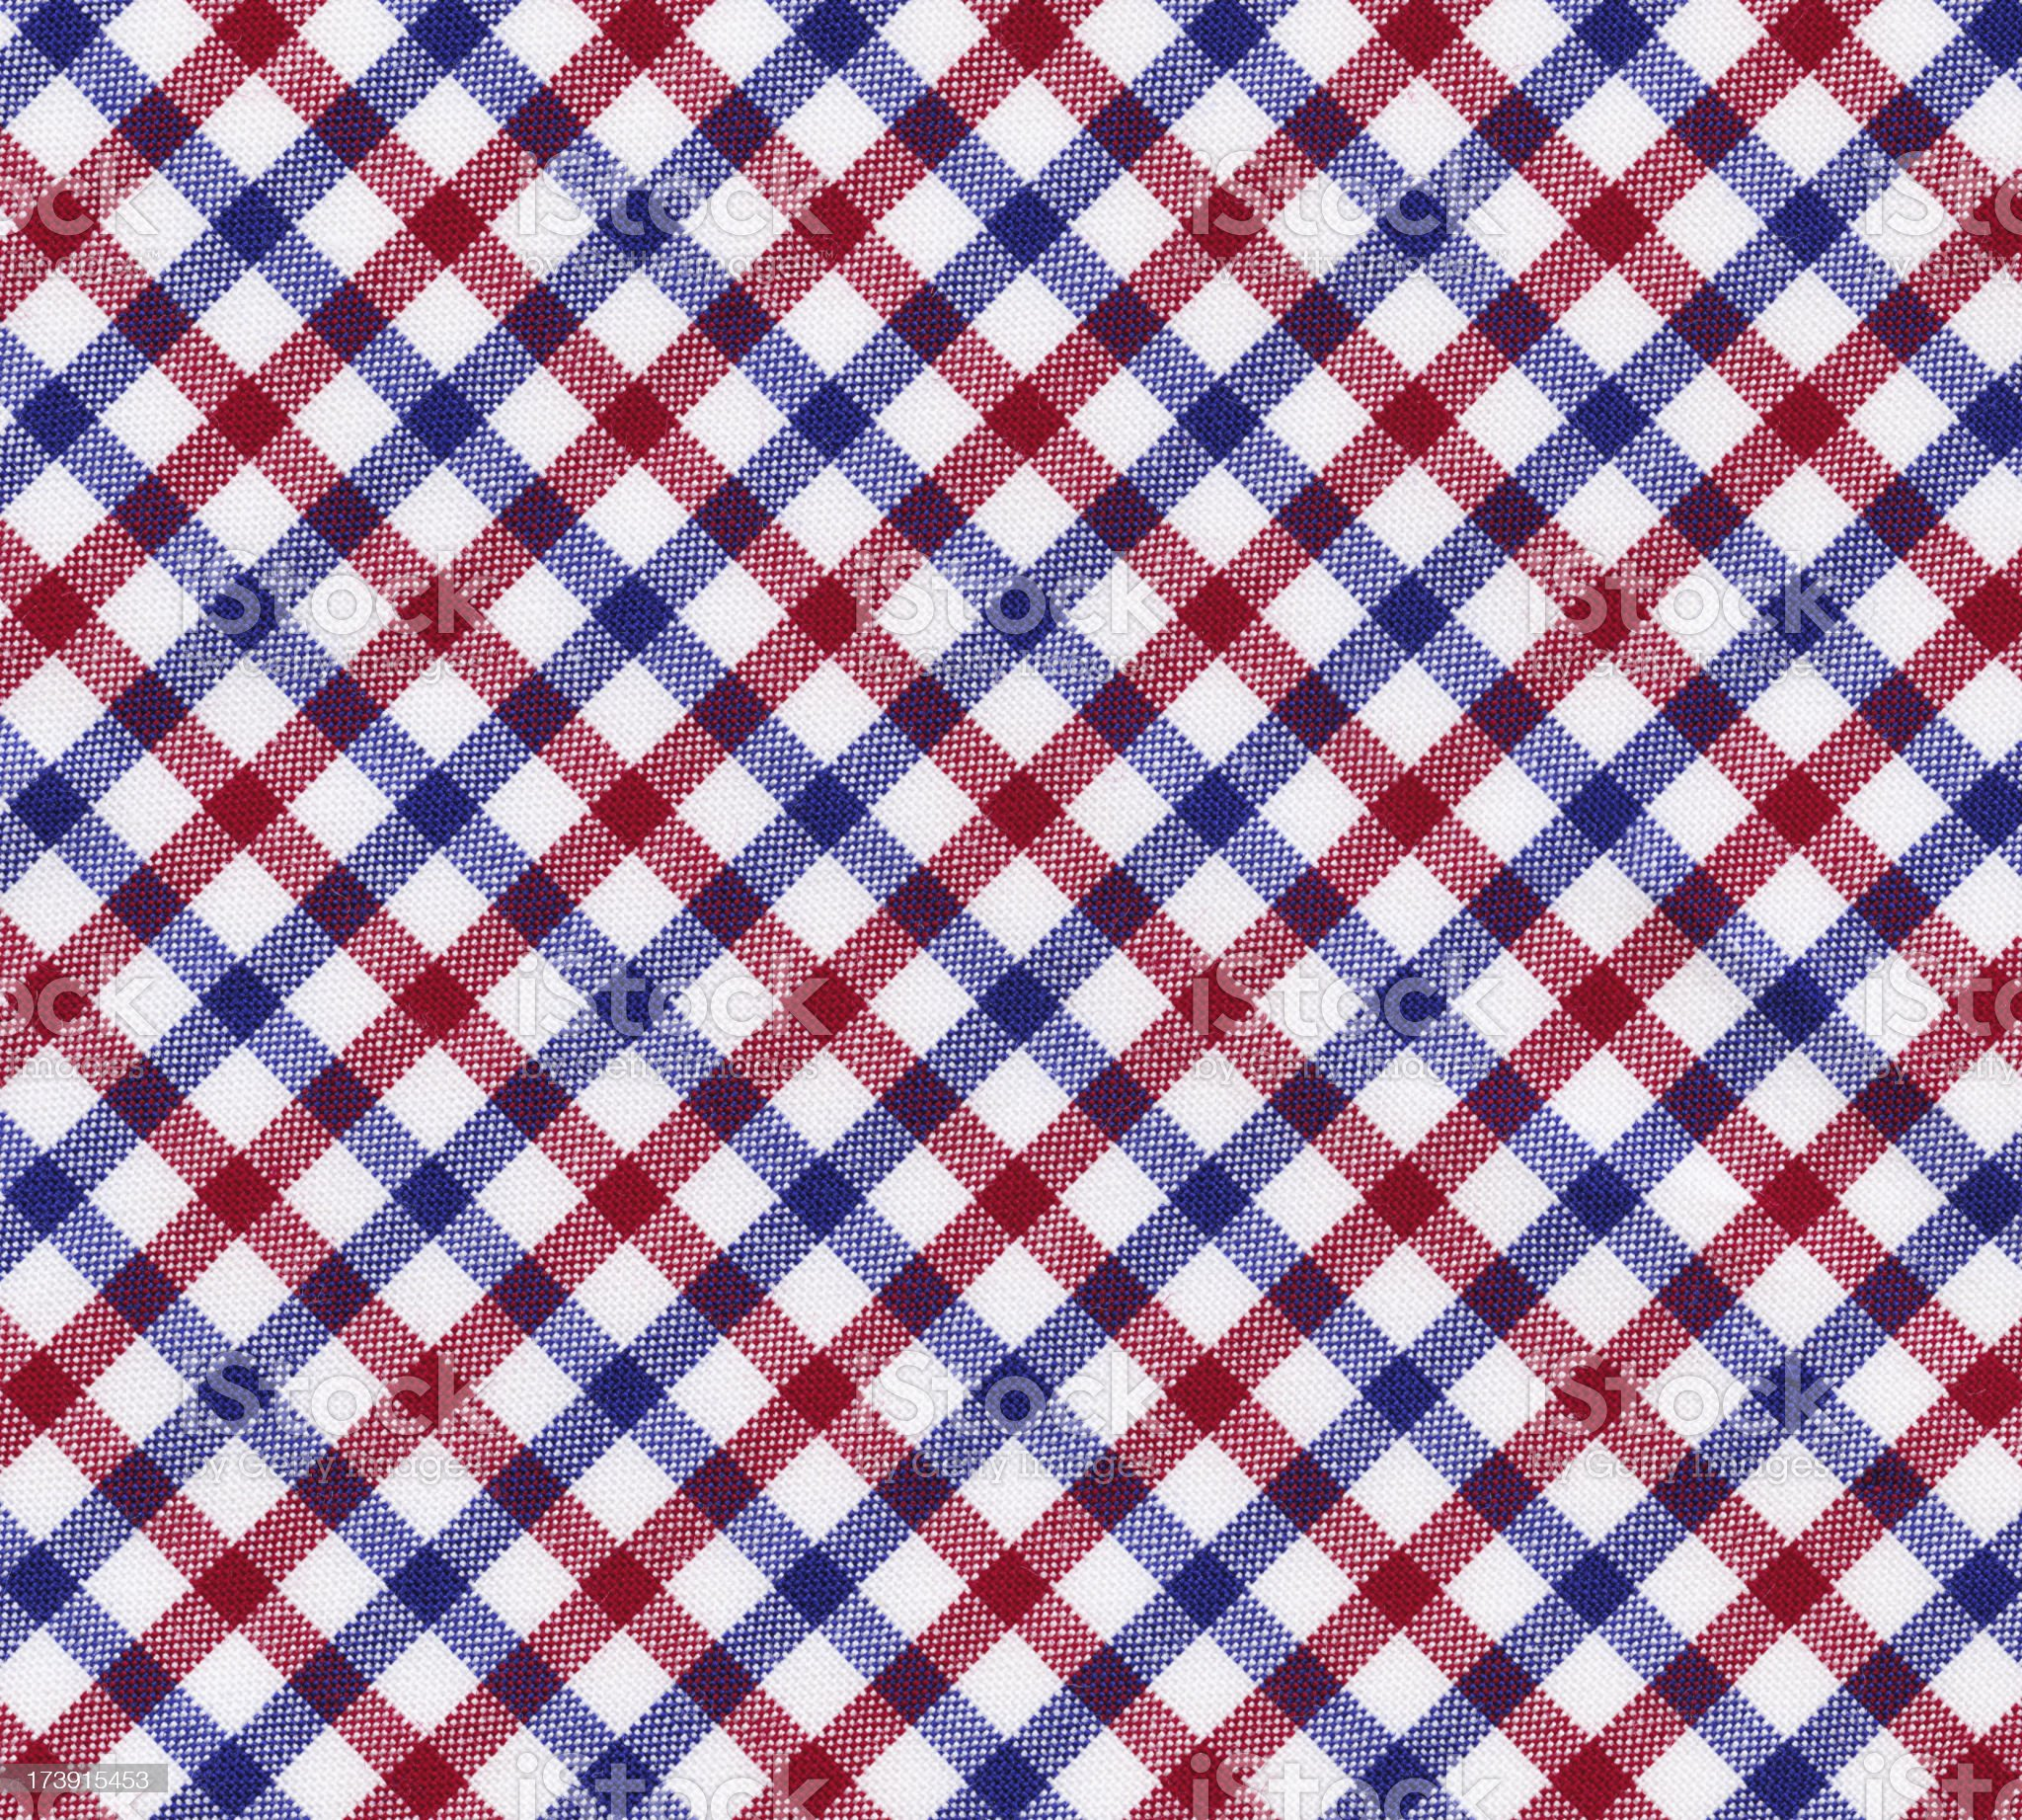 Red, white and blue gingham fabric royalty-free stock photo